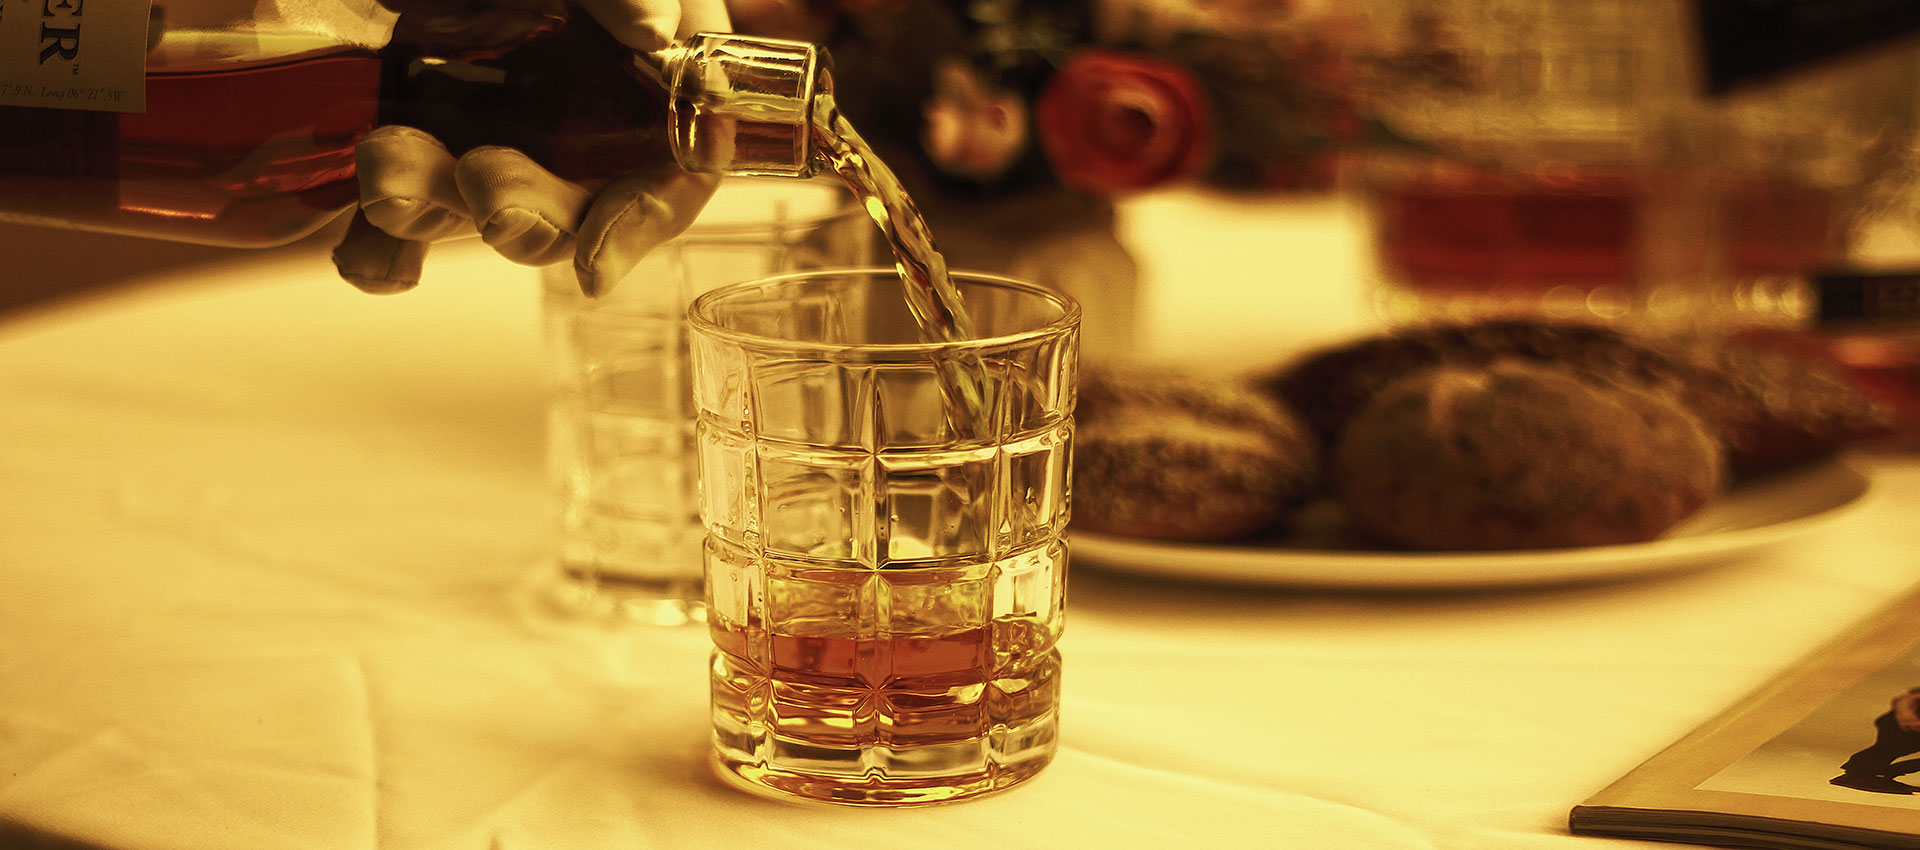 Decanter di whisky